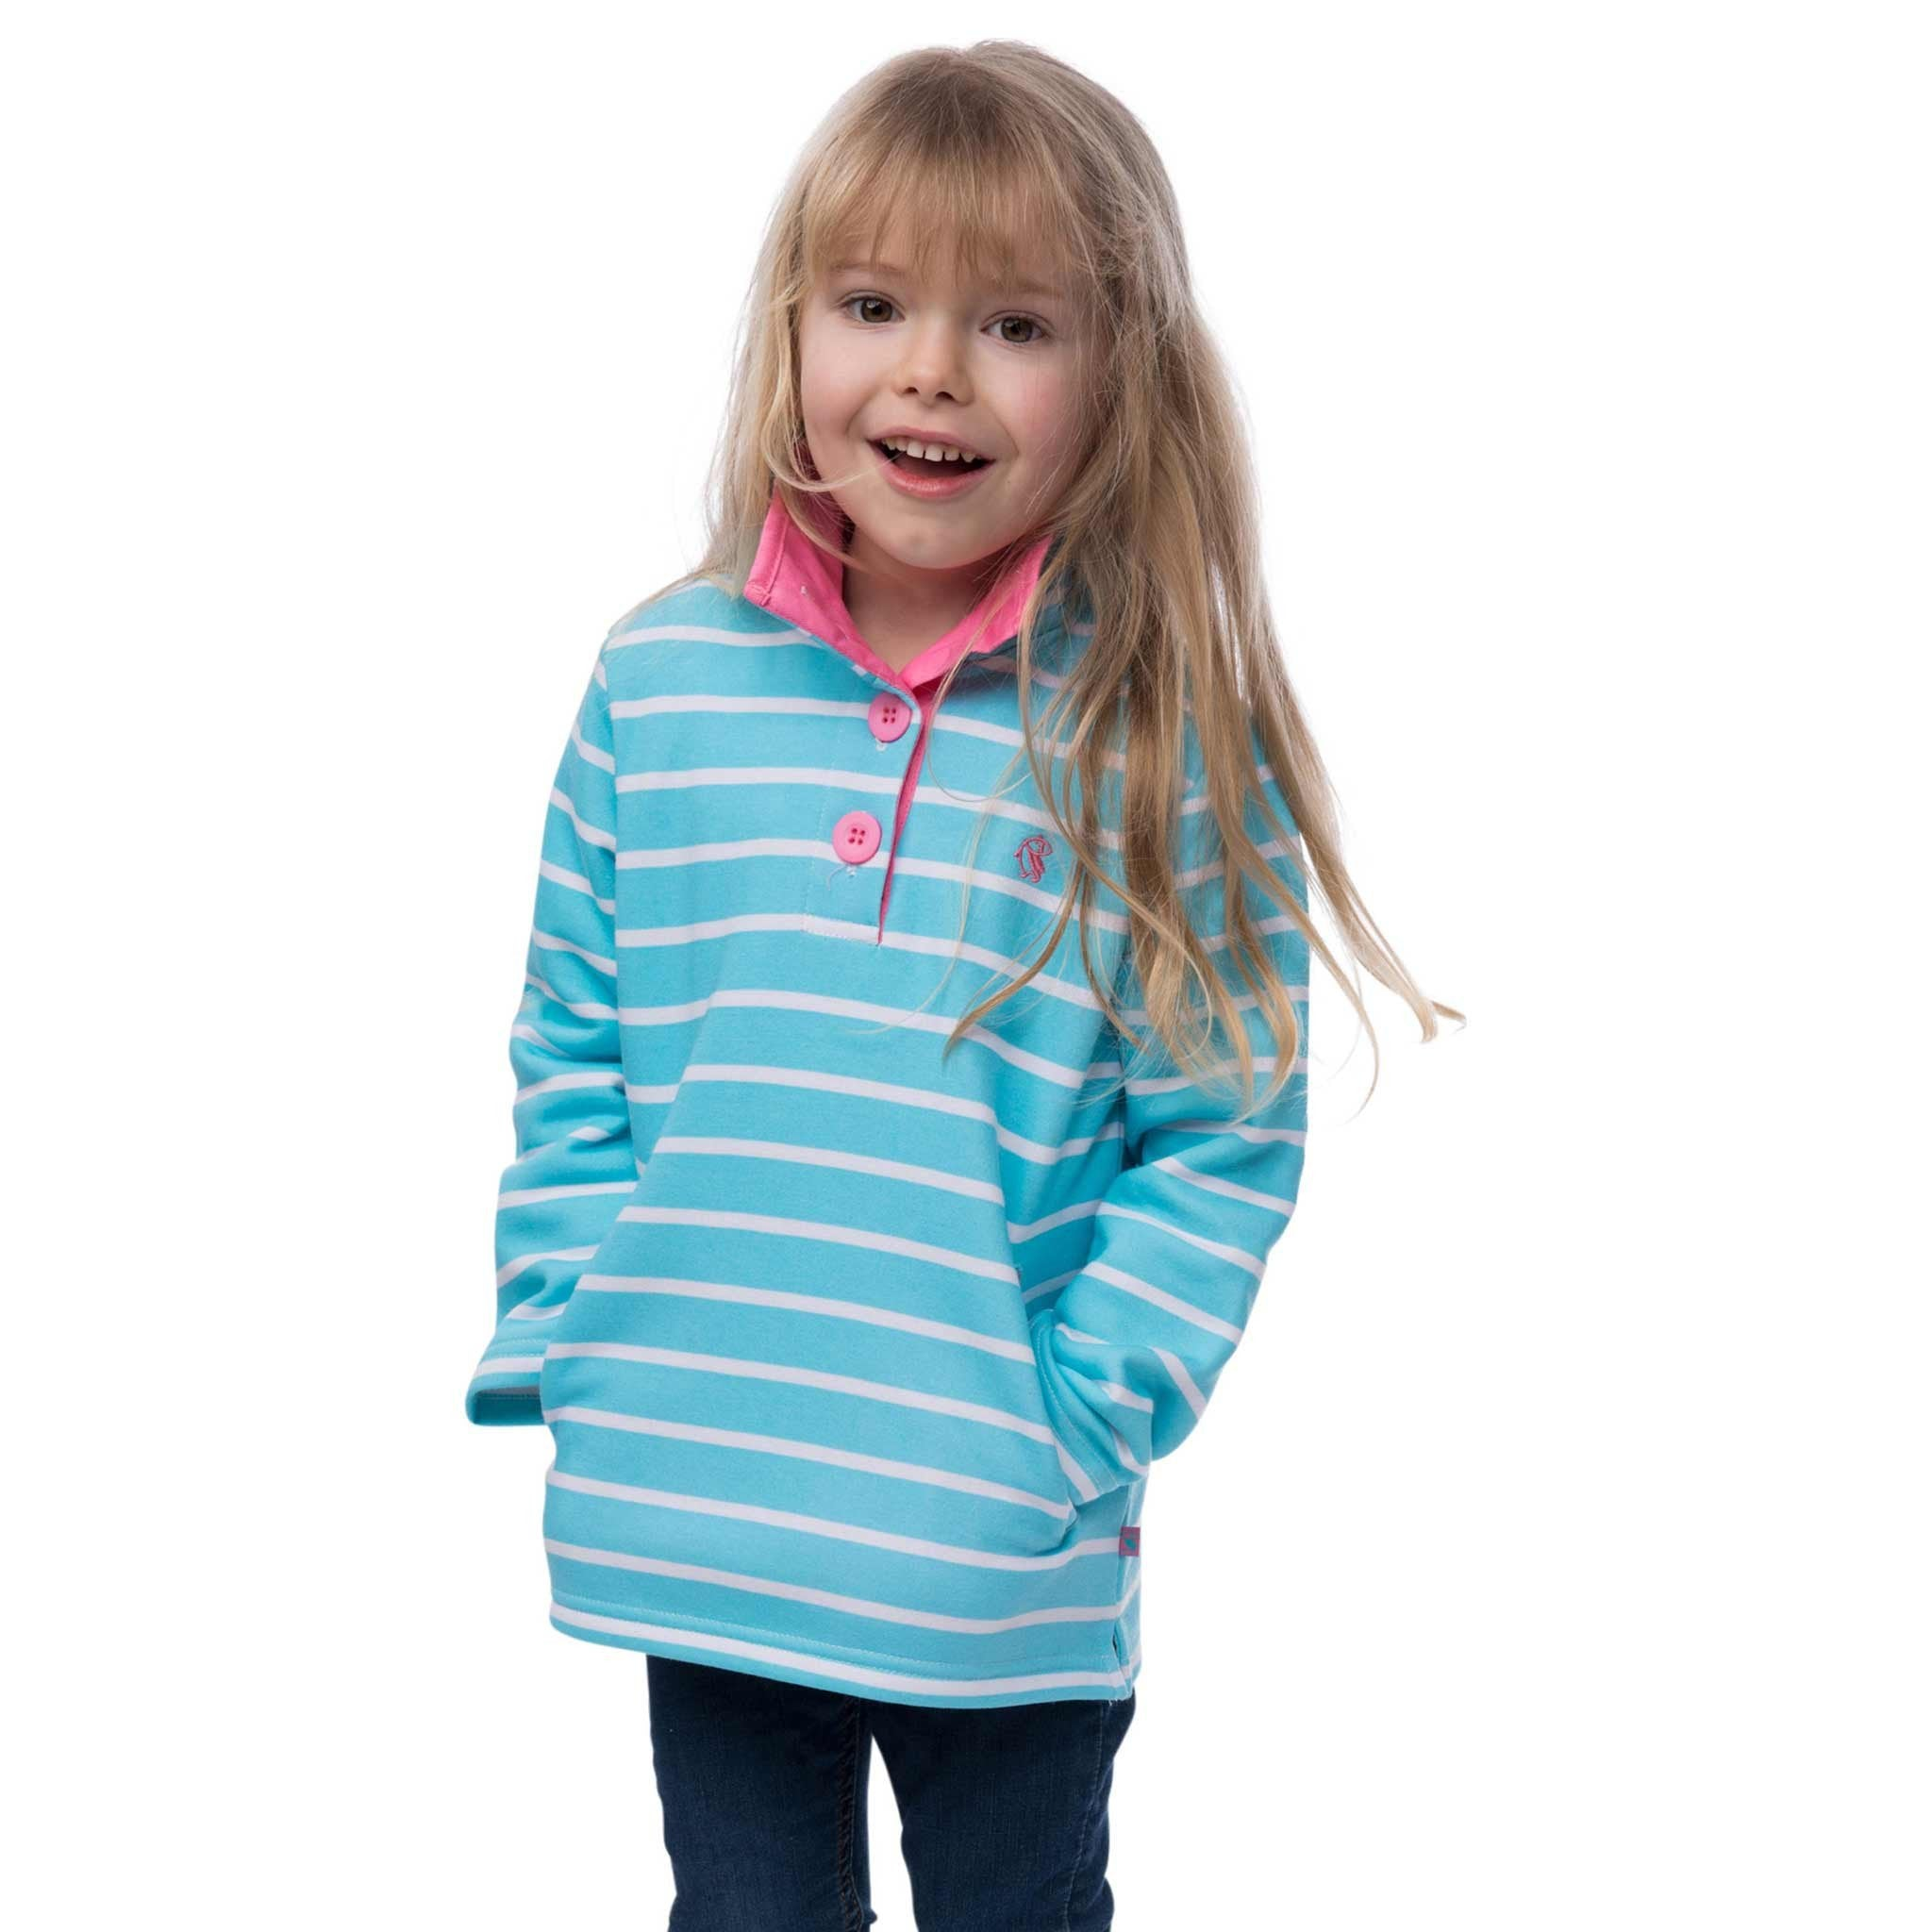 Pearl Girls Half Button Sweatshirt, in Aqua Stripe, Modelled Front View | Lighthouse